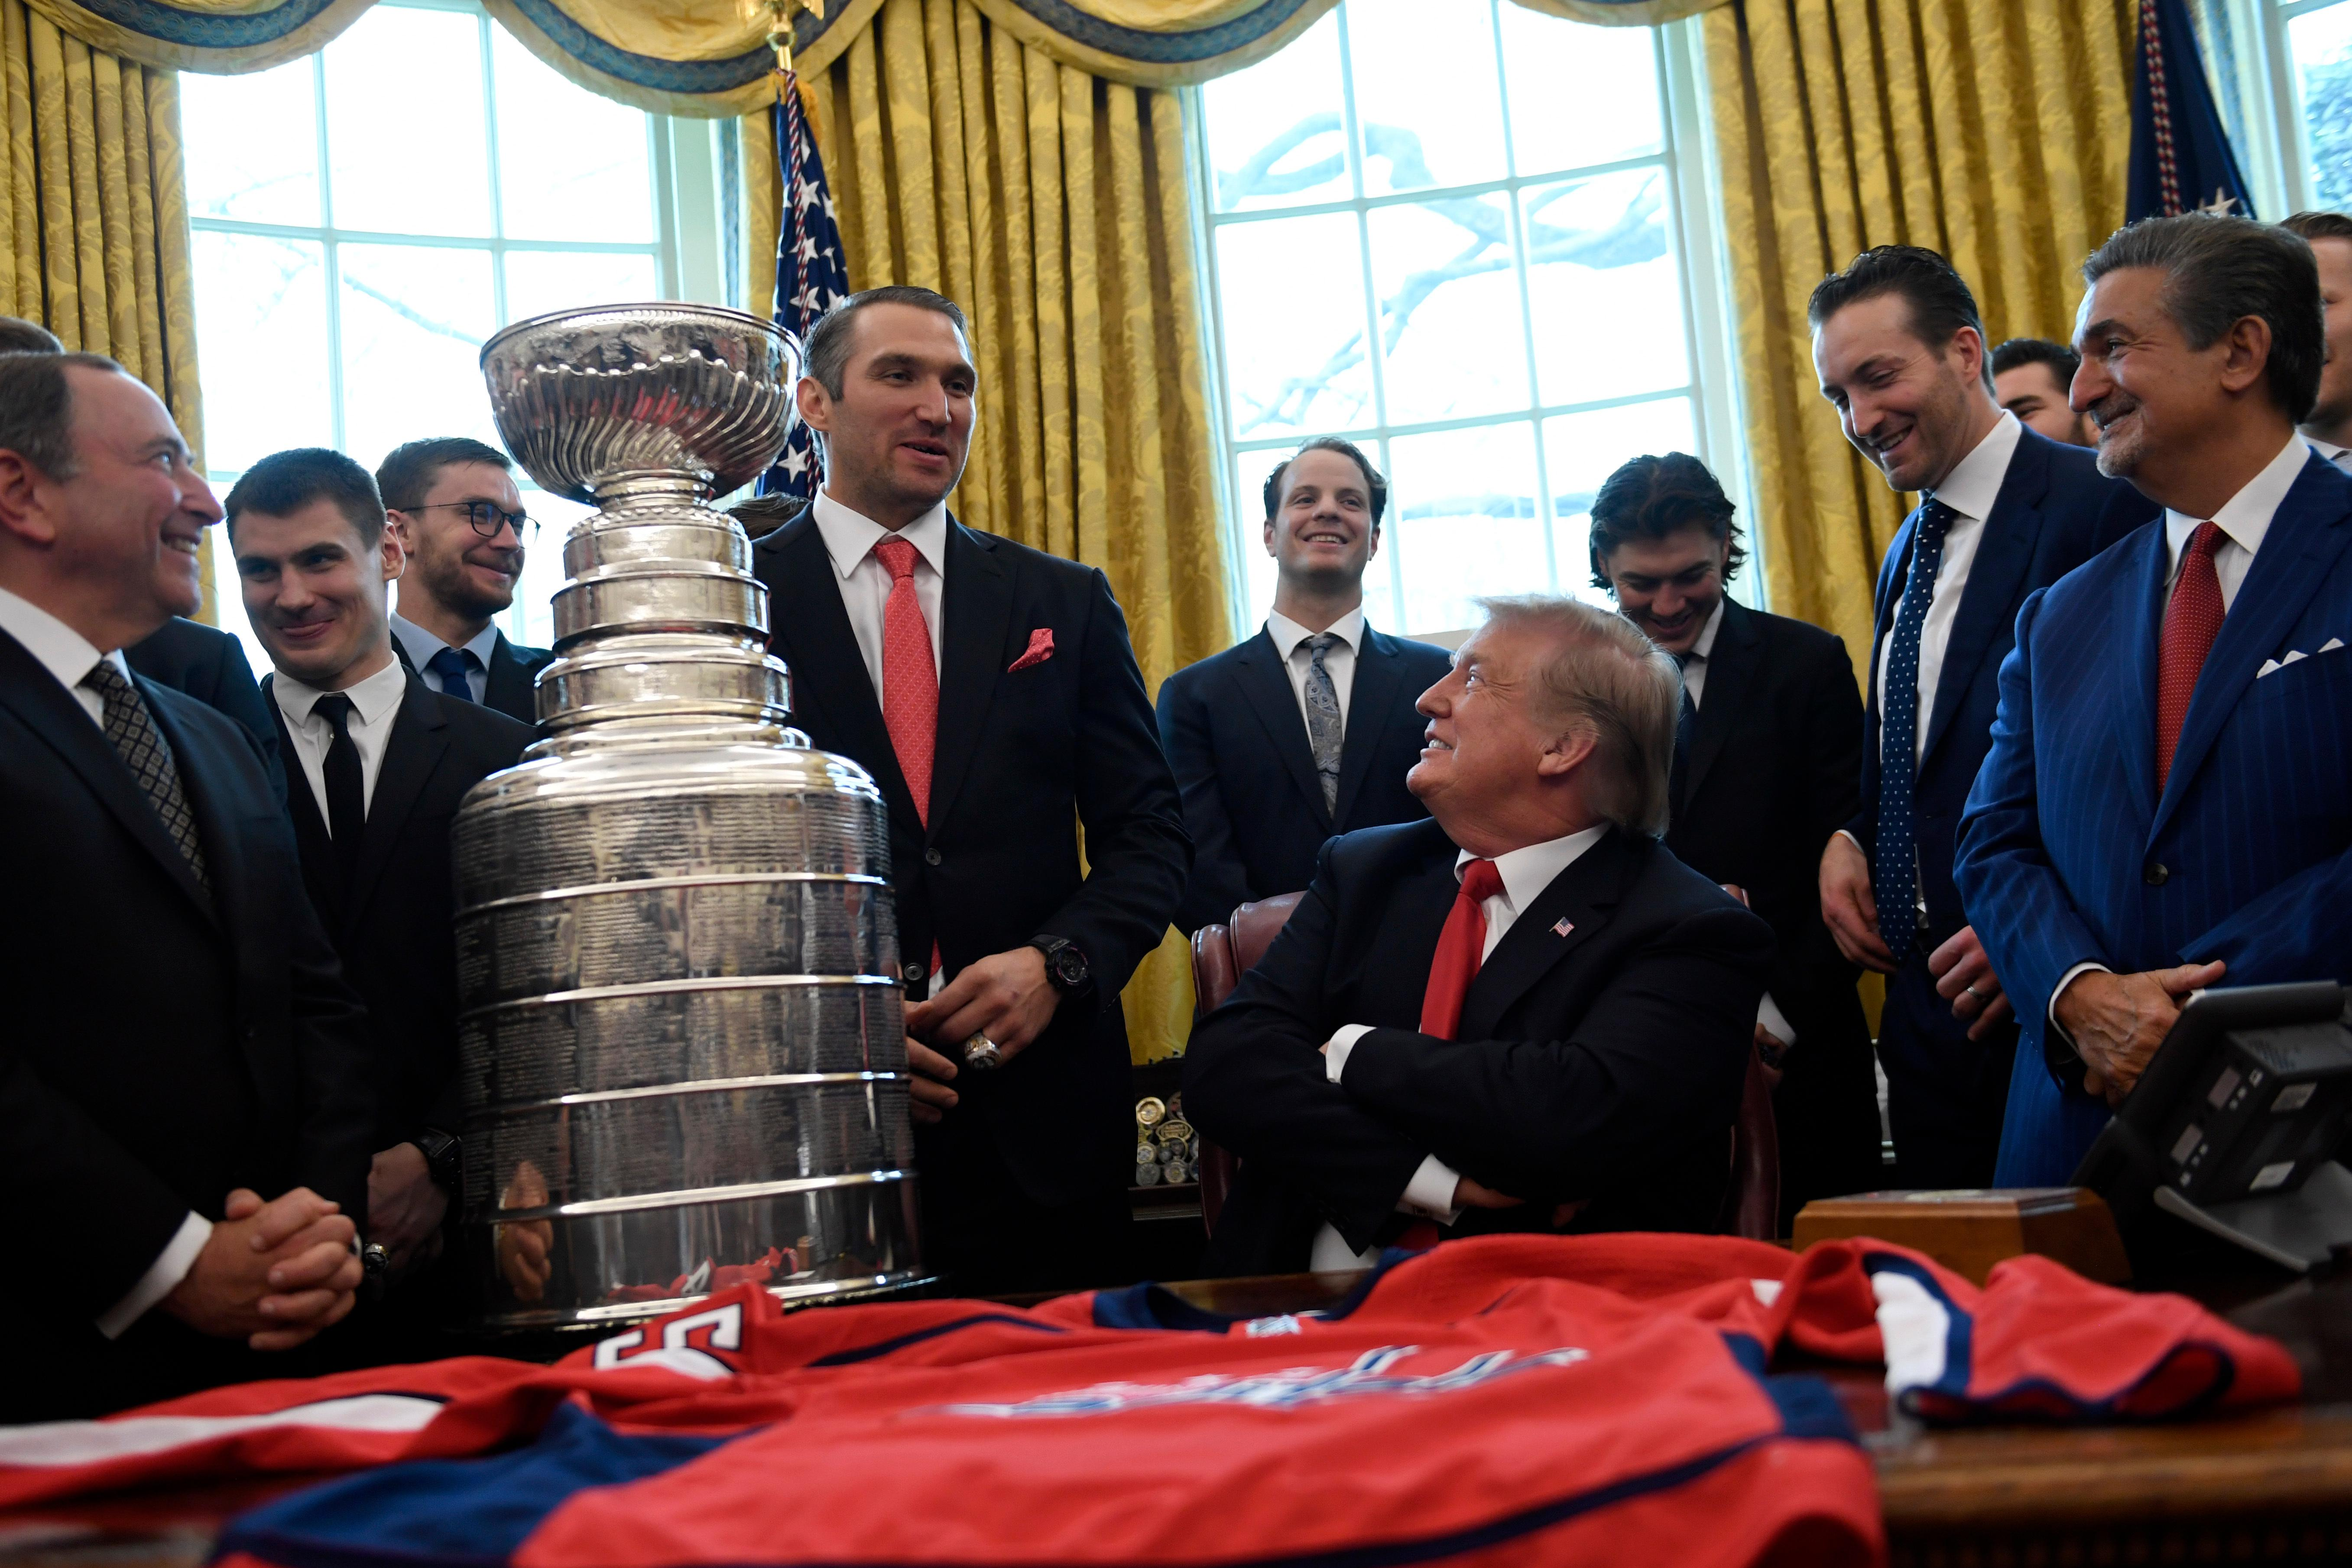 President Donald Trump, seated center, listens as Washington Capitals Alex Ovechkin, fourth from left, speaks during the teams visit to the Oval Office of the White House in Washington, Monday, March 25, 2019, to honor the 2018 Stanley Cup Champion Washington Capitals hockey team. Capitals owner Ted Leonsis, right, and NHL Commissioner Gery Bettman, left, and other members of the team listen. (AP Photo/Susan Walsh)